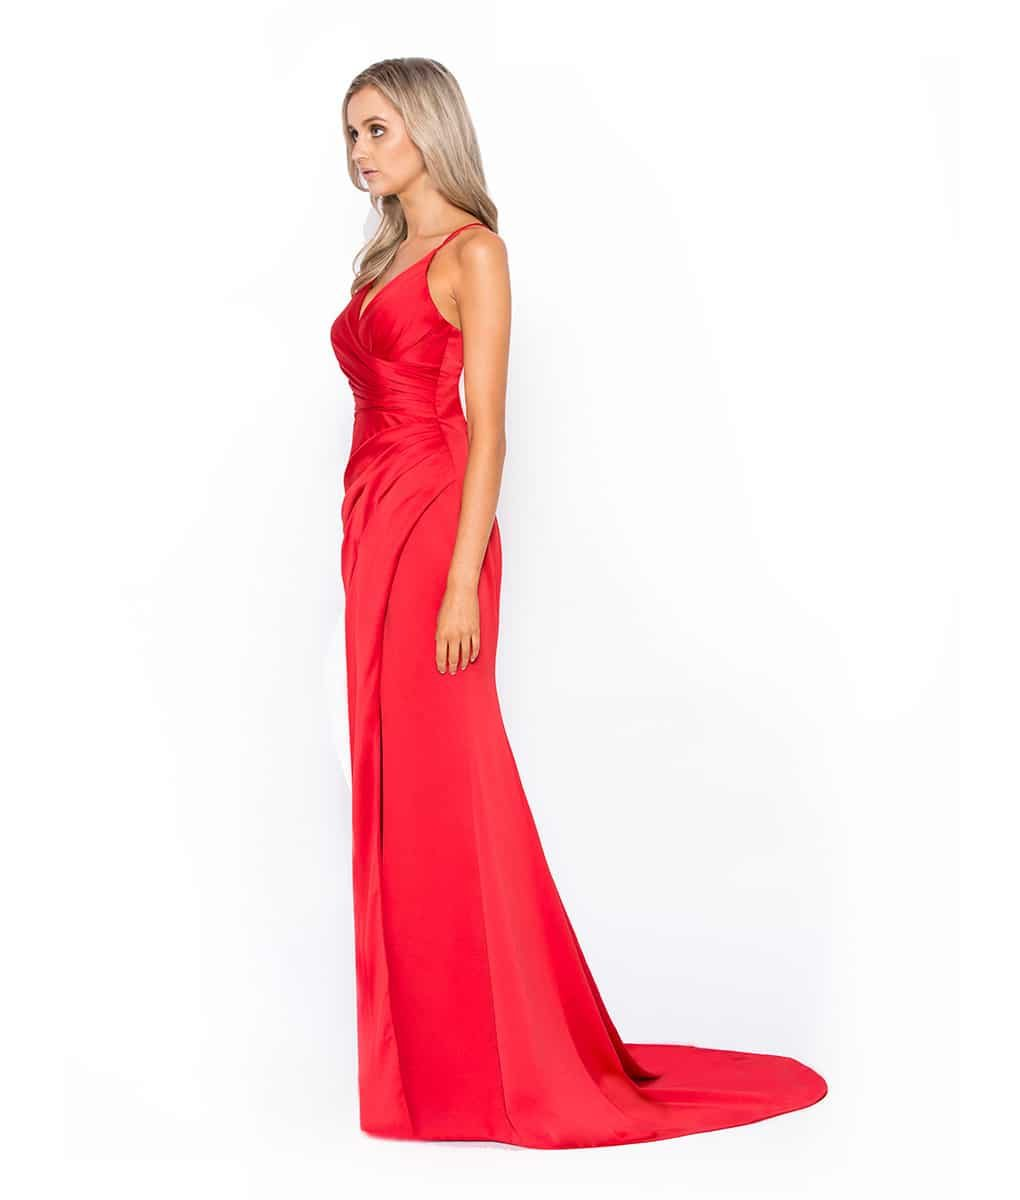 Red Satin Gown Alila Boutique